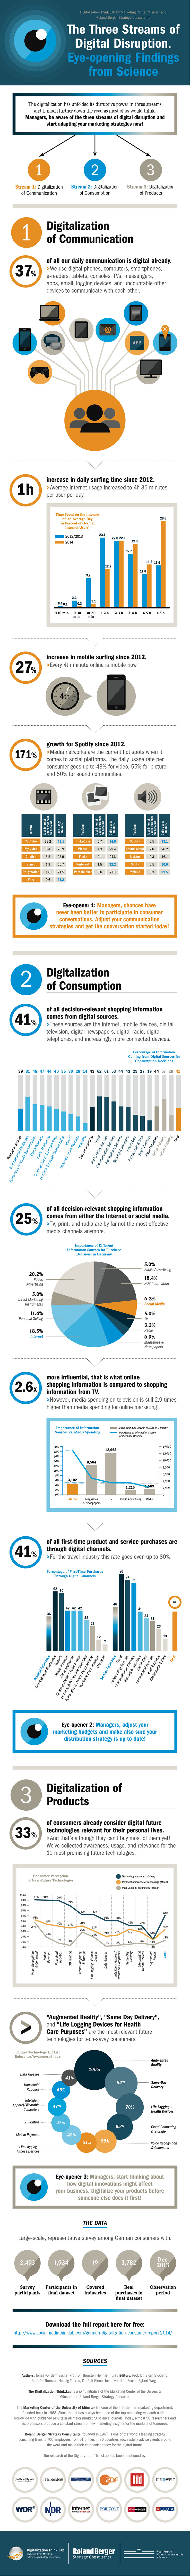 Infographic: The 3 Streams of Digital Disruption Eye Opening Findings